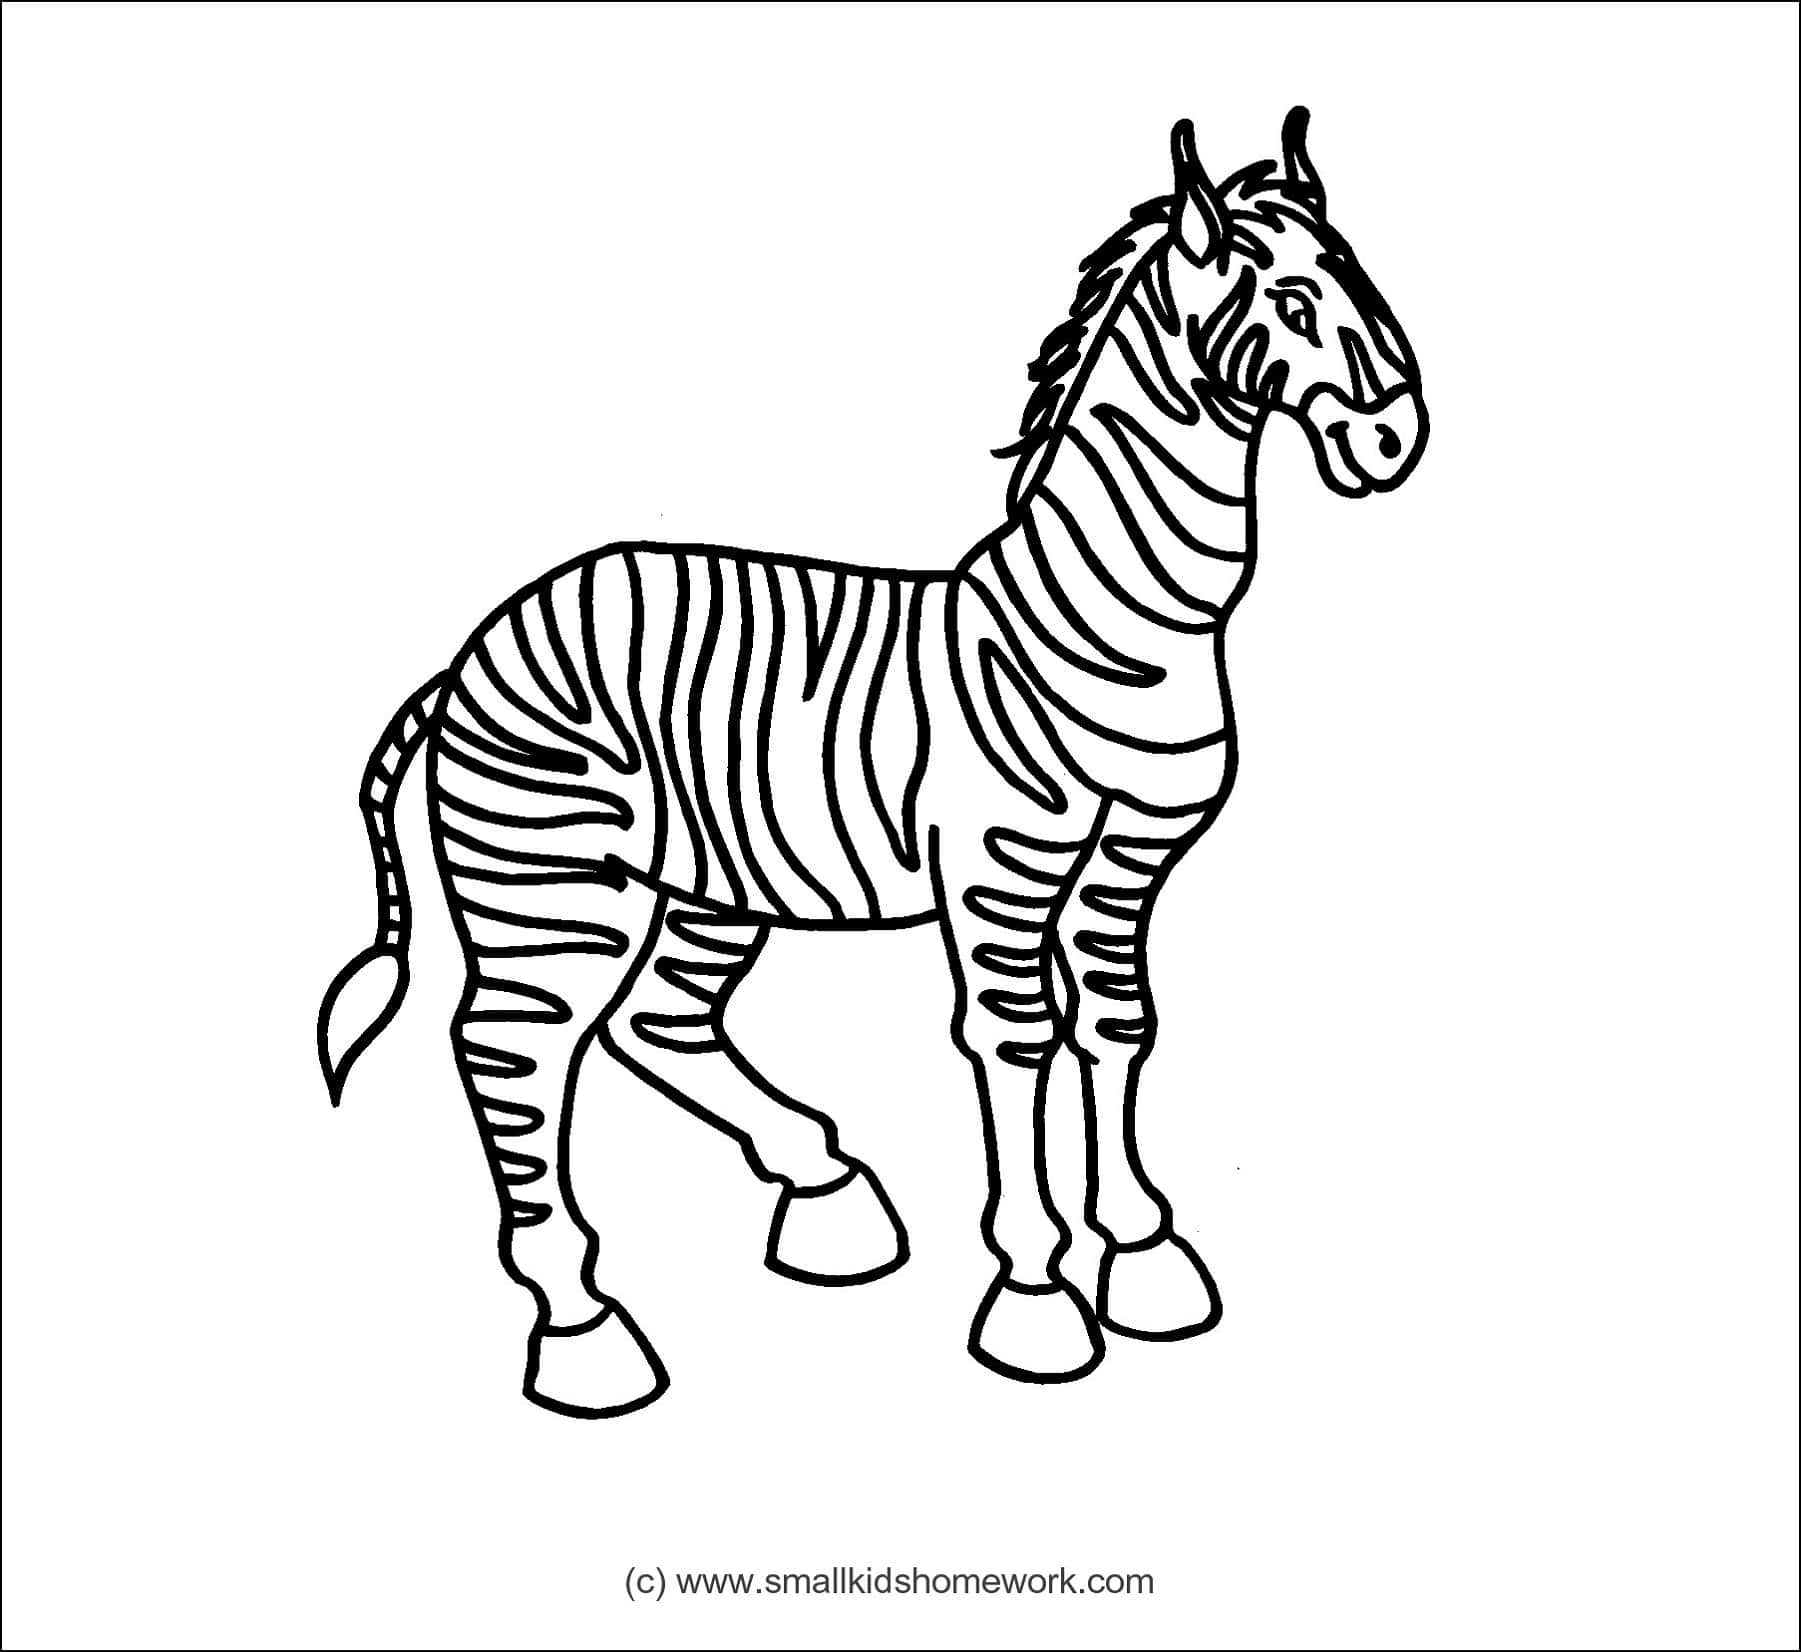 Zebra Outline And Coloring Picture With Interesting Facts